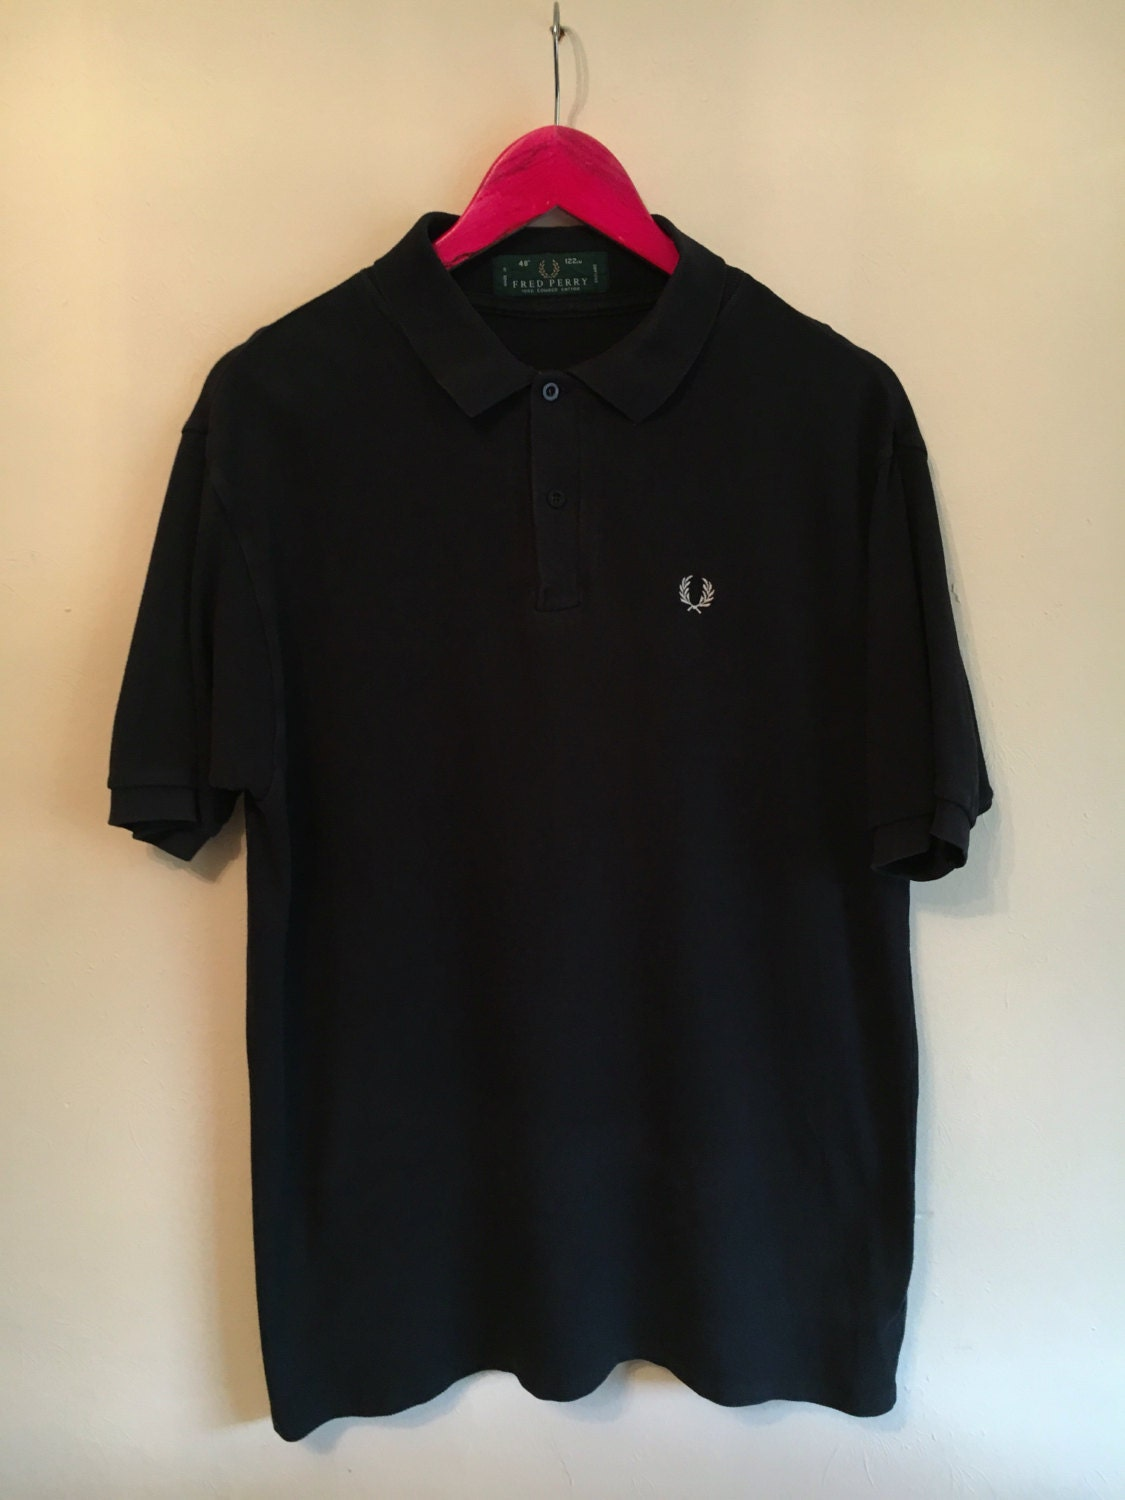 90s Fred Perry polo shirt